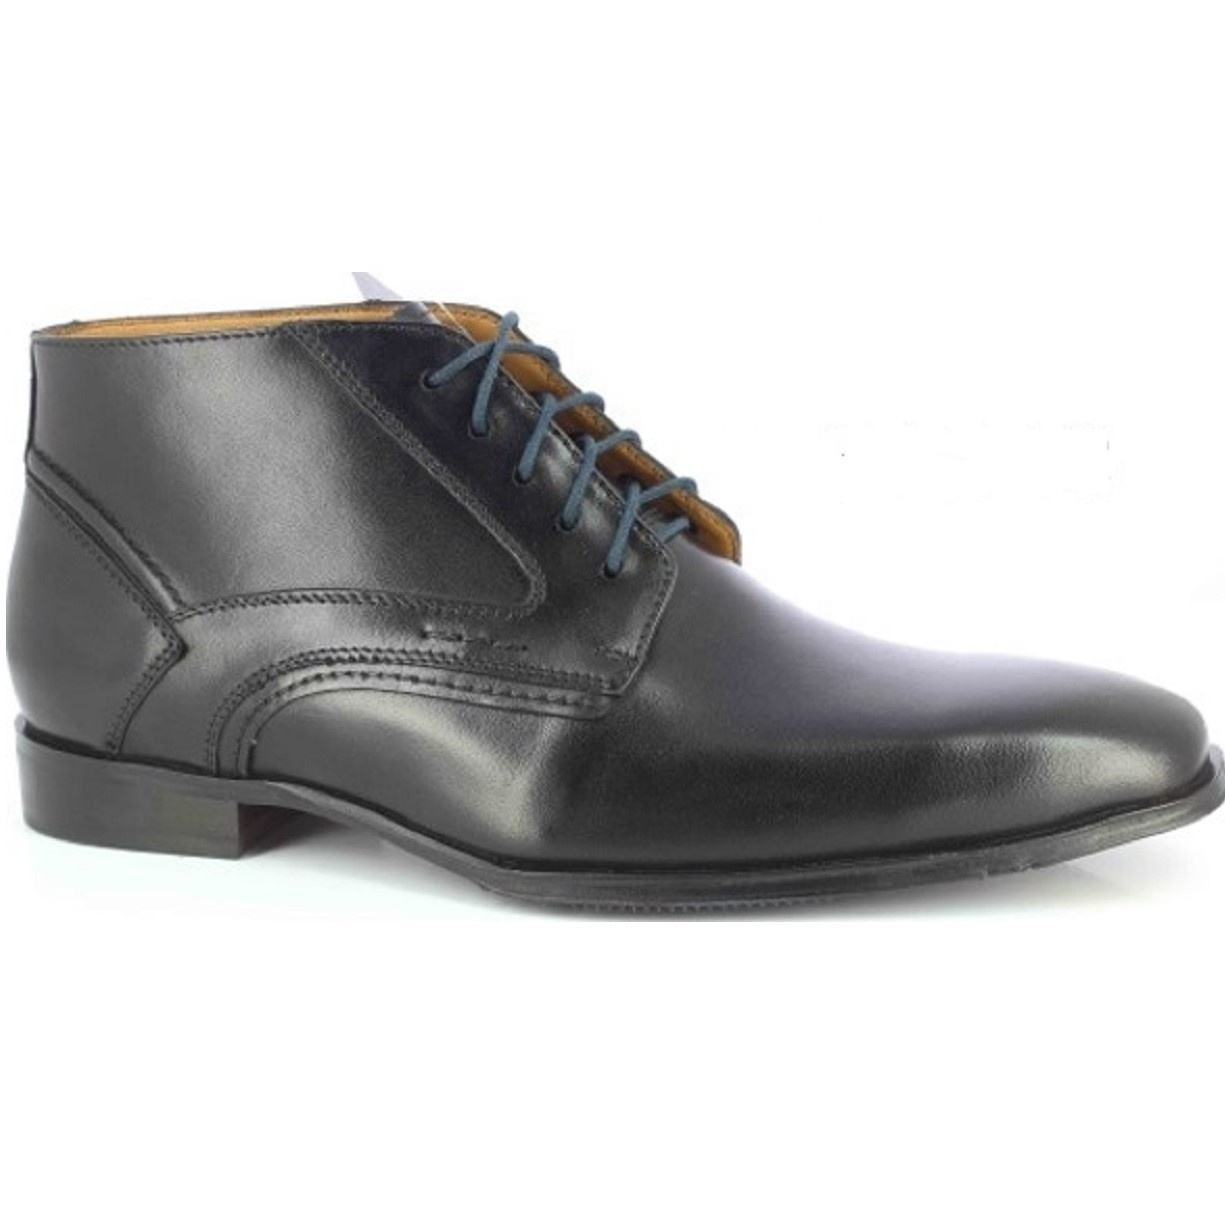 best quality Chukka boot for men- black